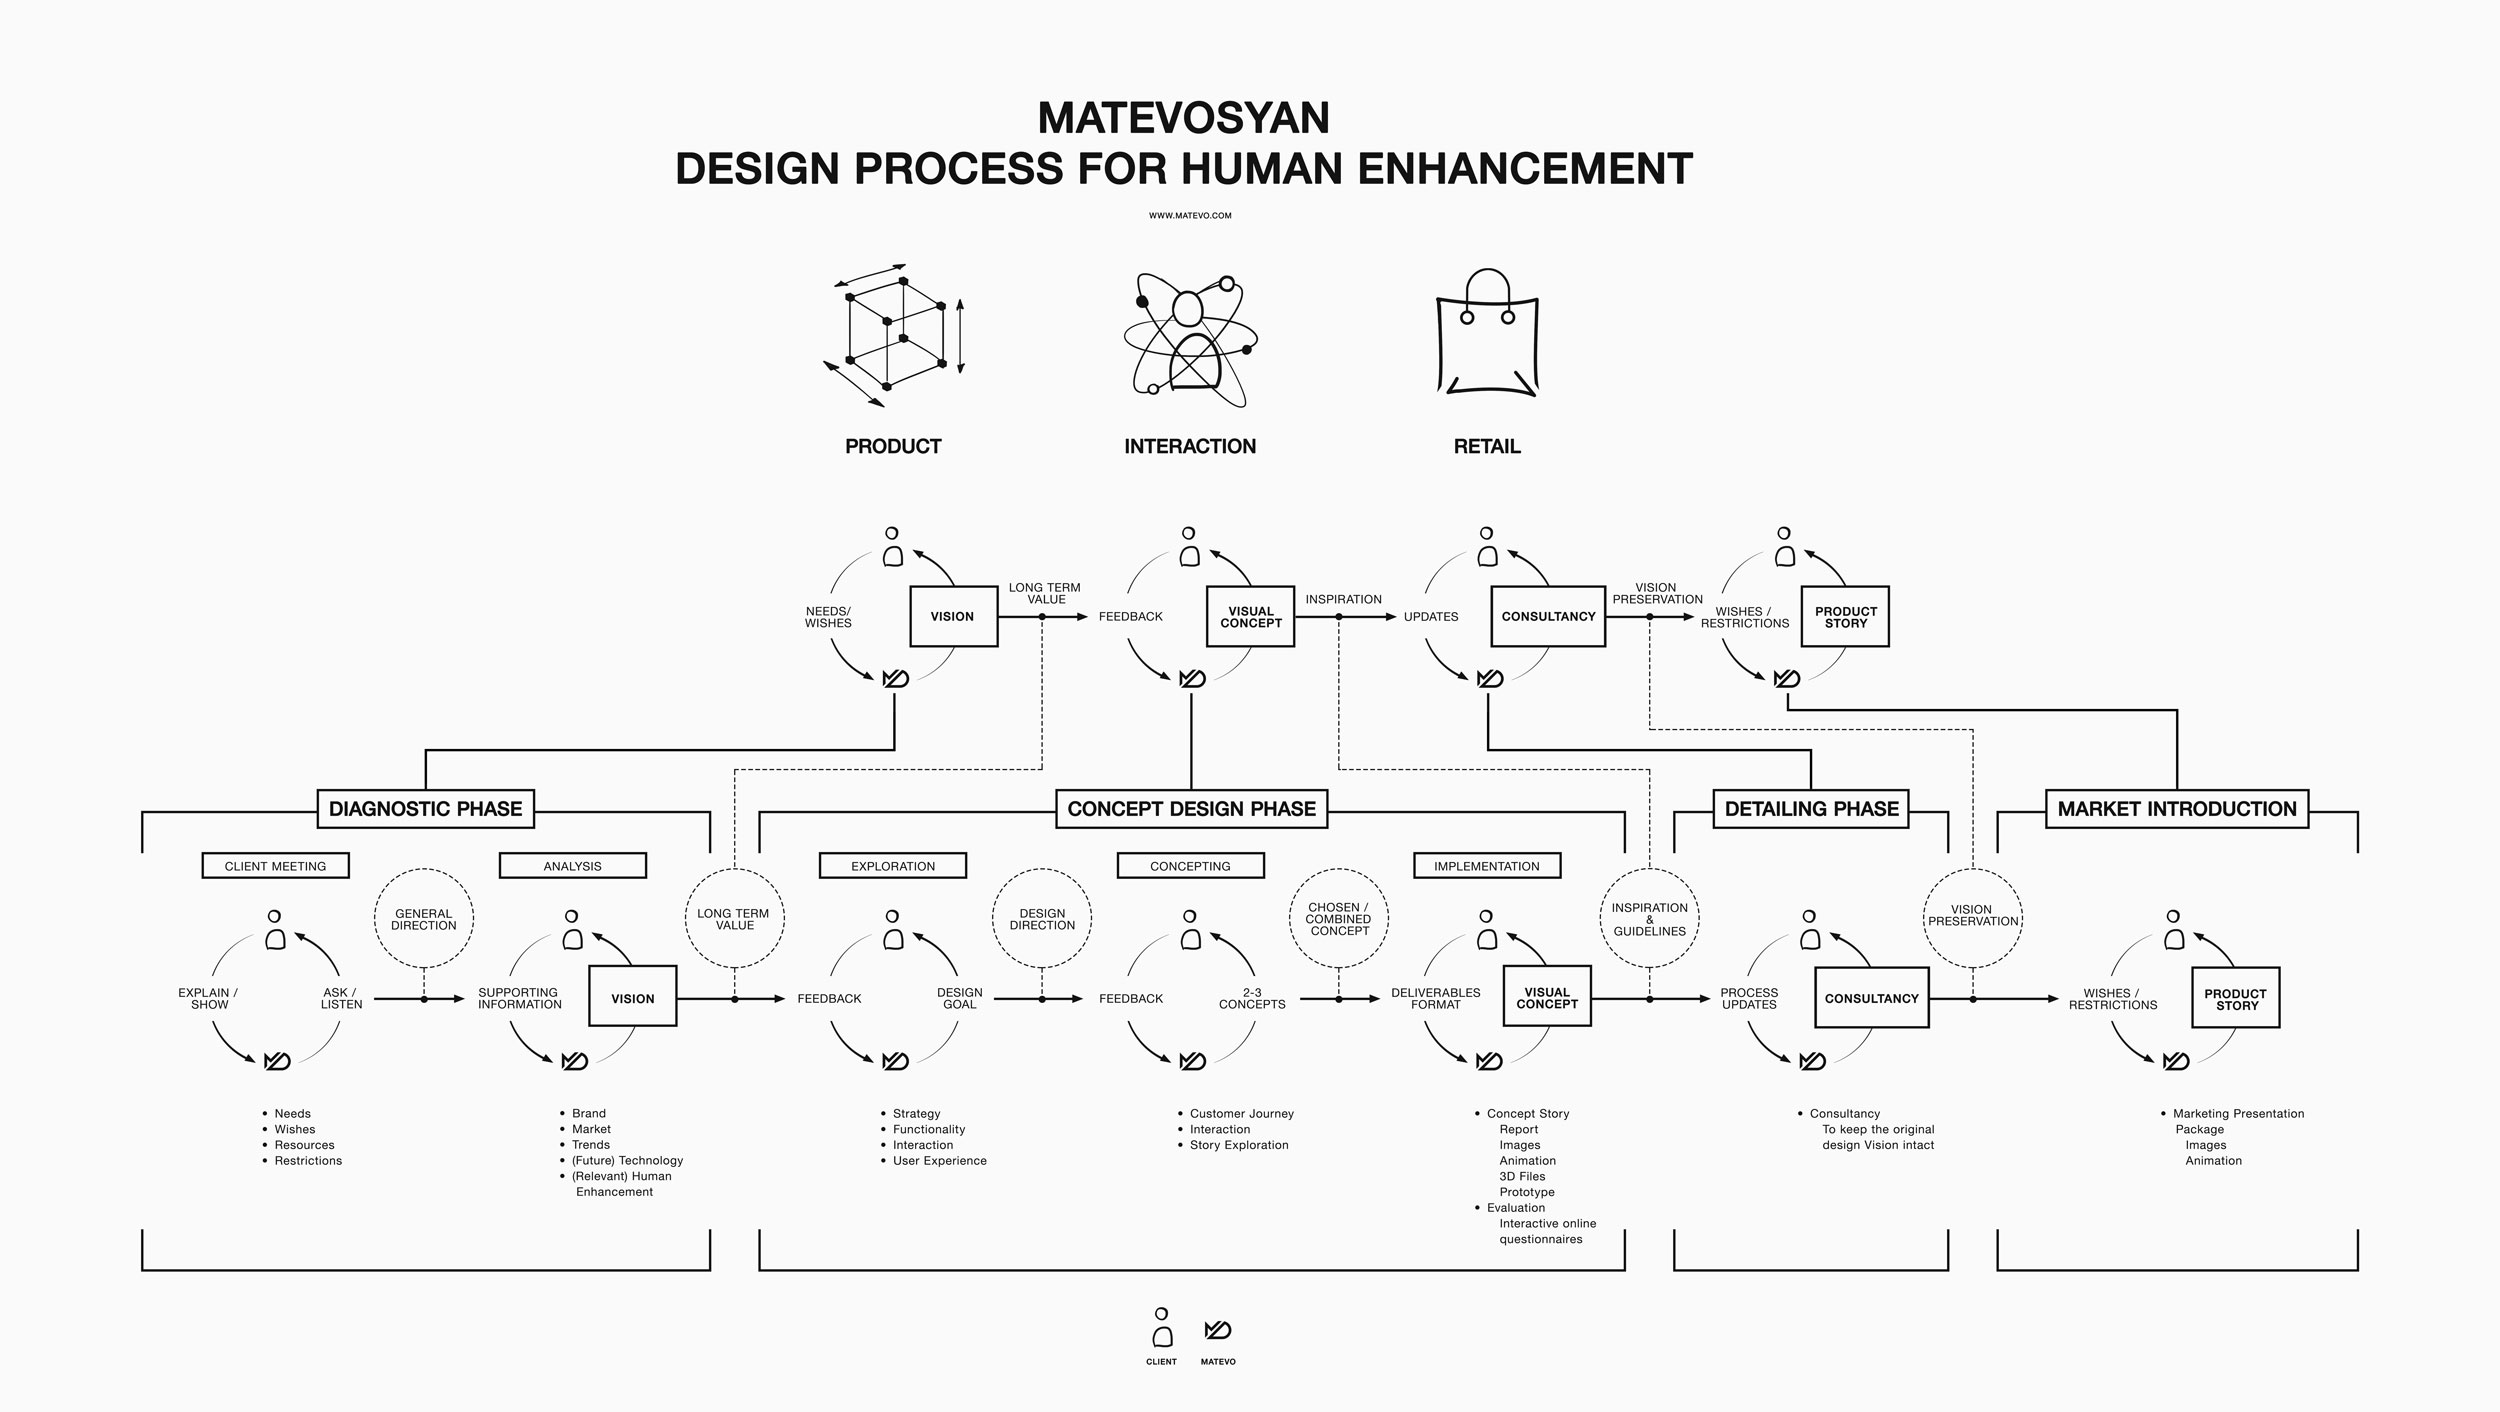 Matevo_Design_Process_Full.jpg